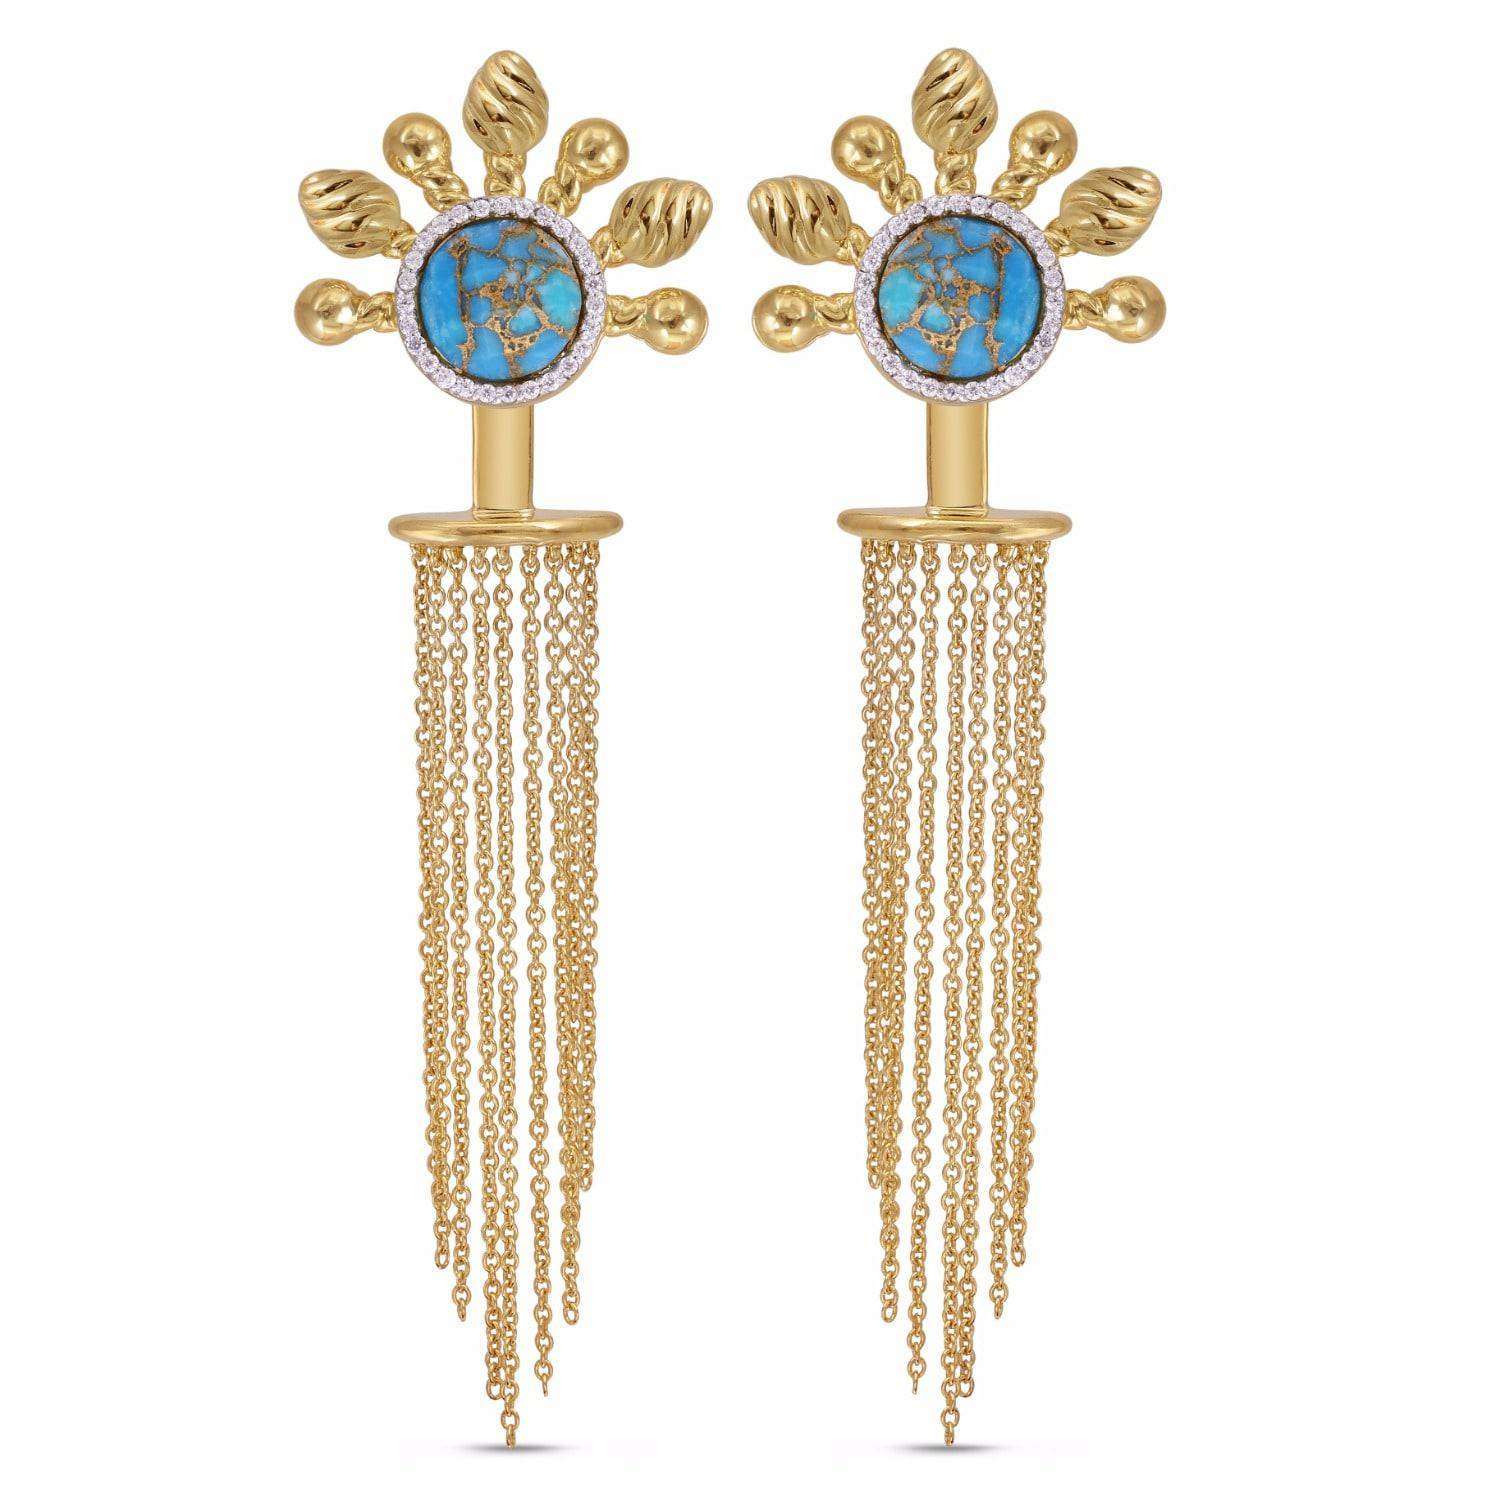 Lyst Lmj Floating Rays Detachable Earrings in Metallic